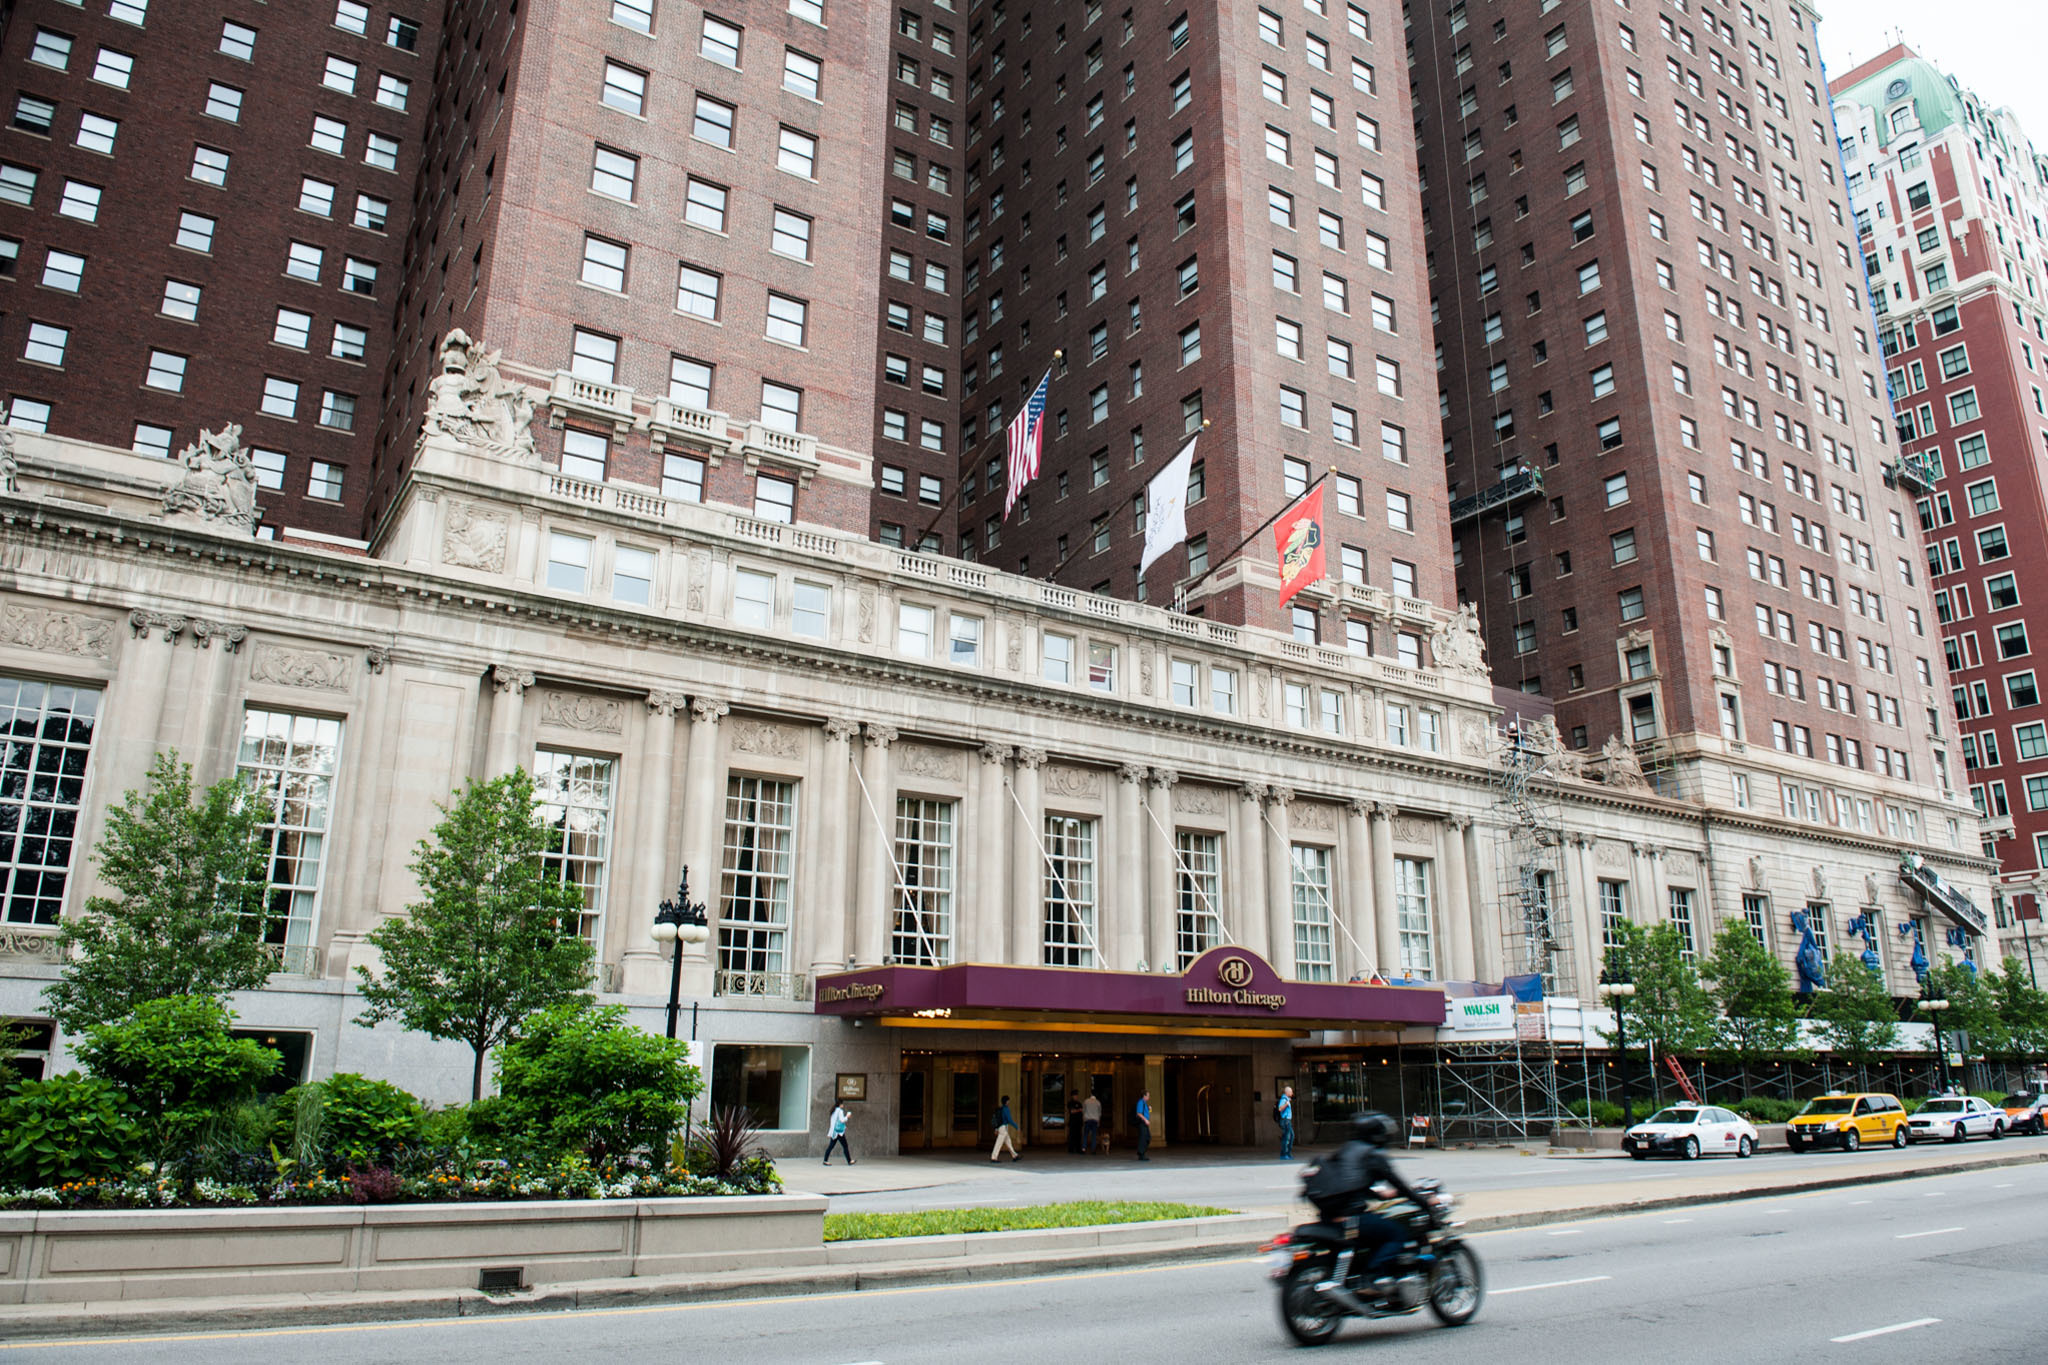 South loop hotels near soldier field and grant park for Best hotel location in chicago